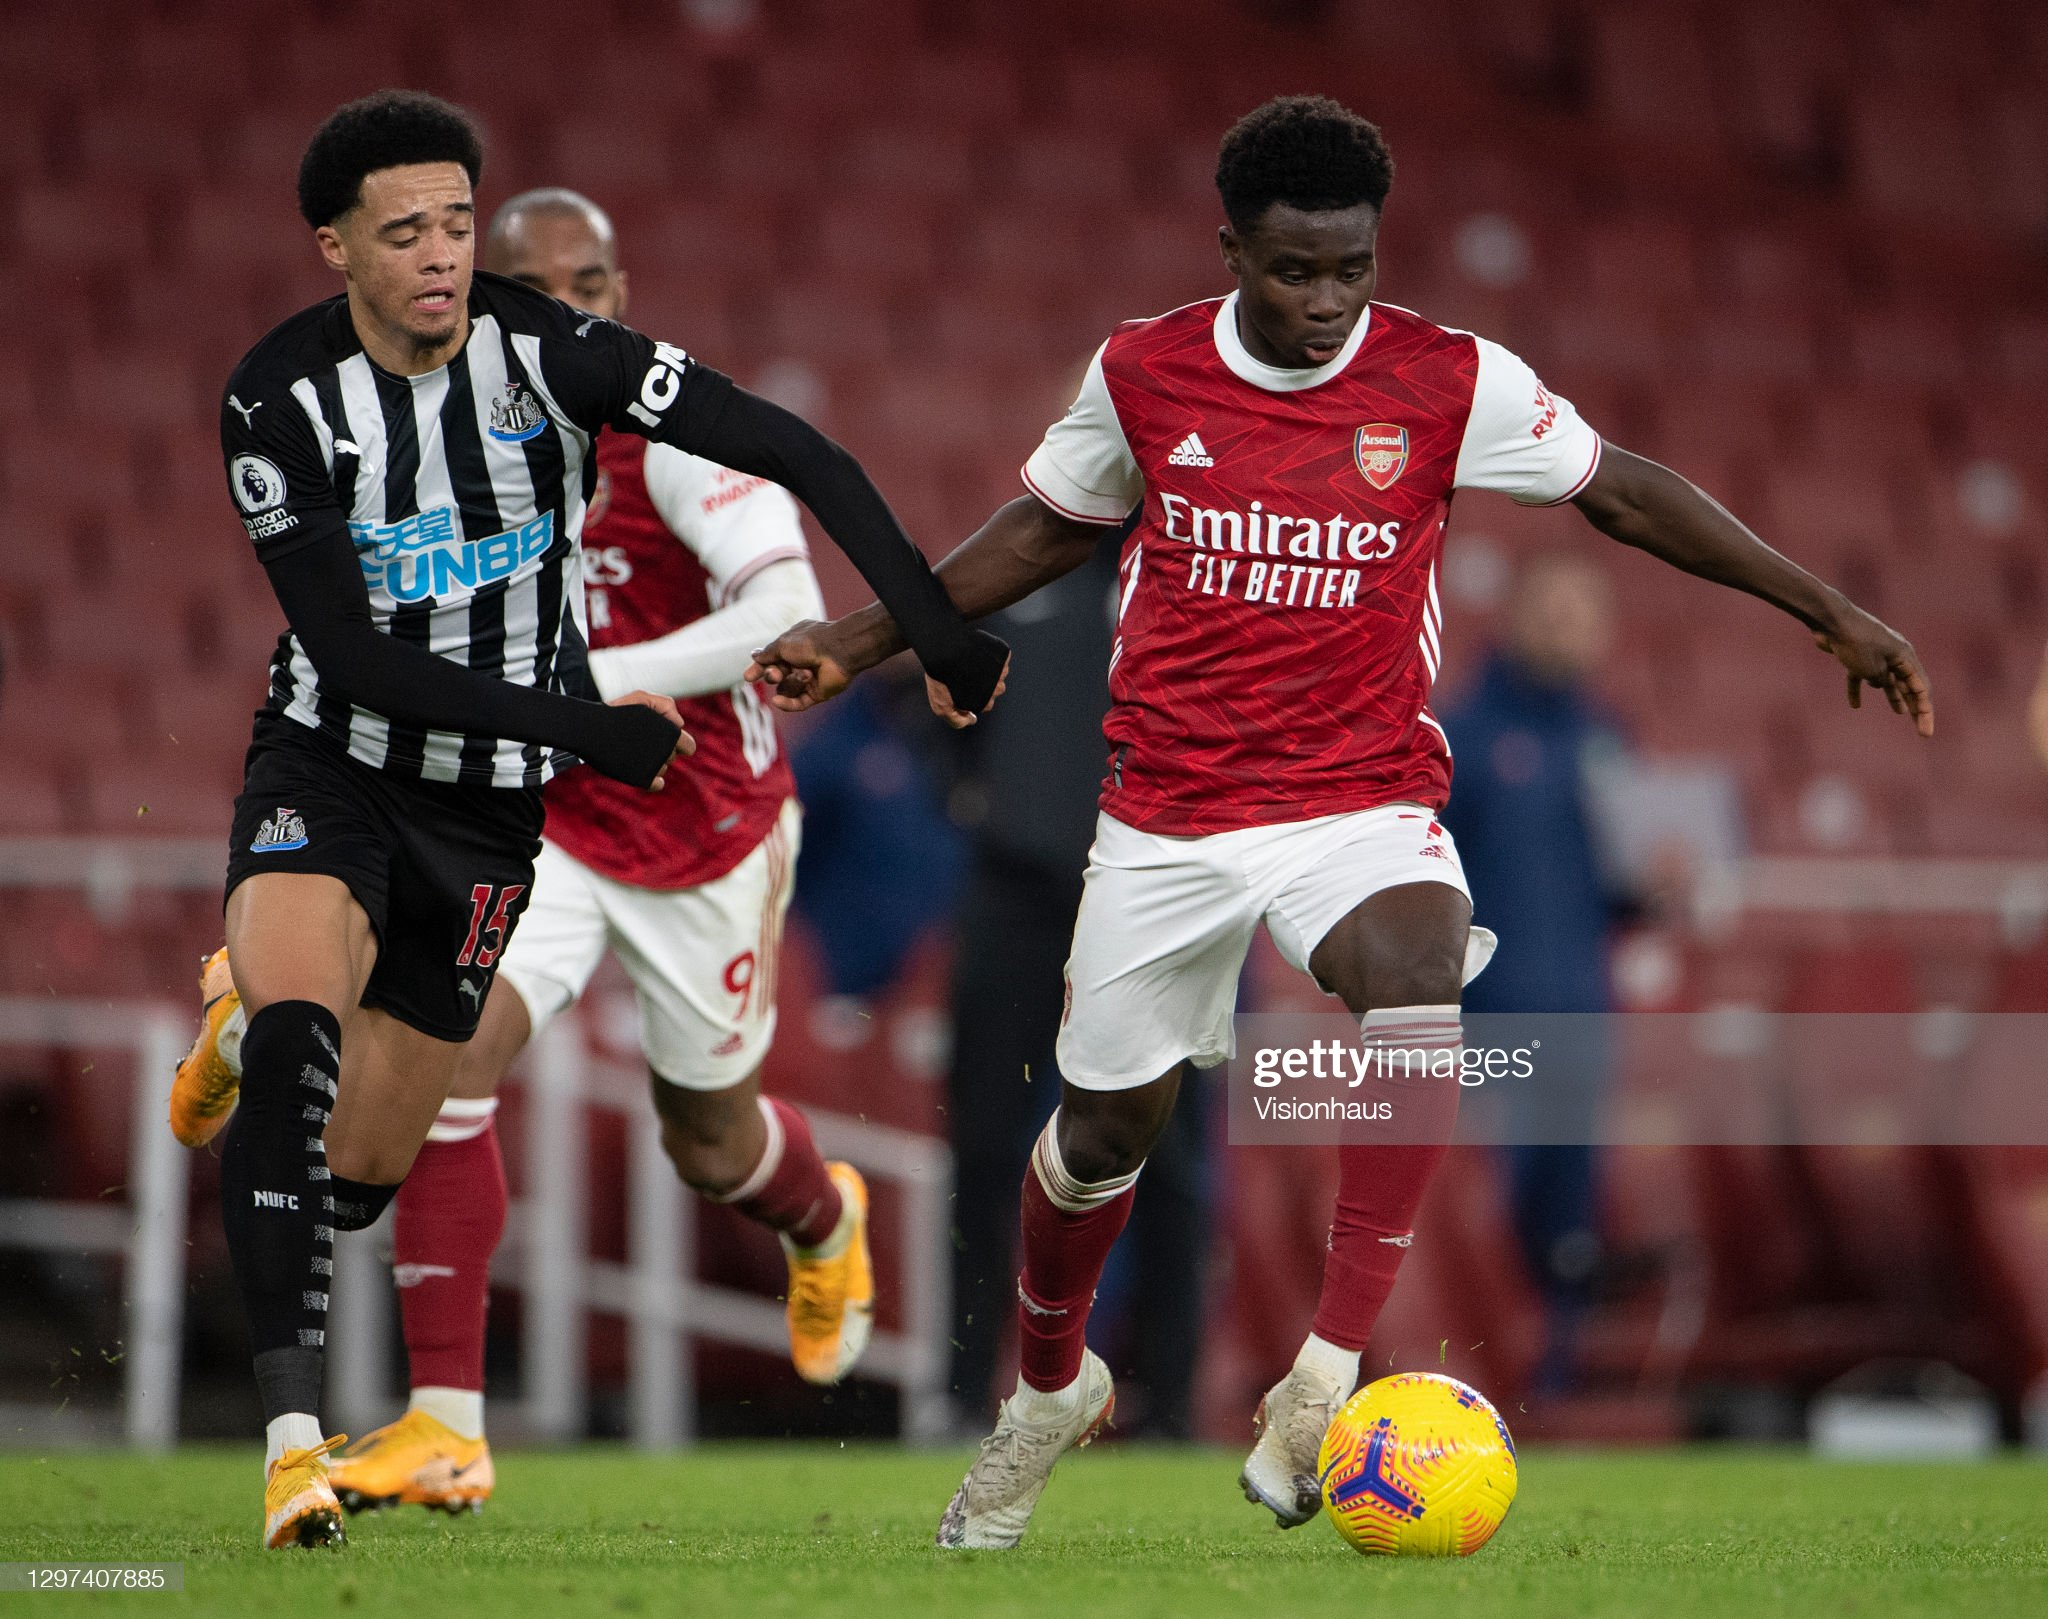 Newcastle vs Arsenal Preview, prediction and odds